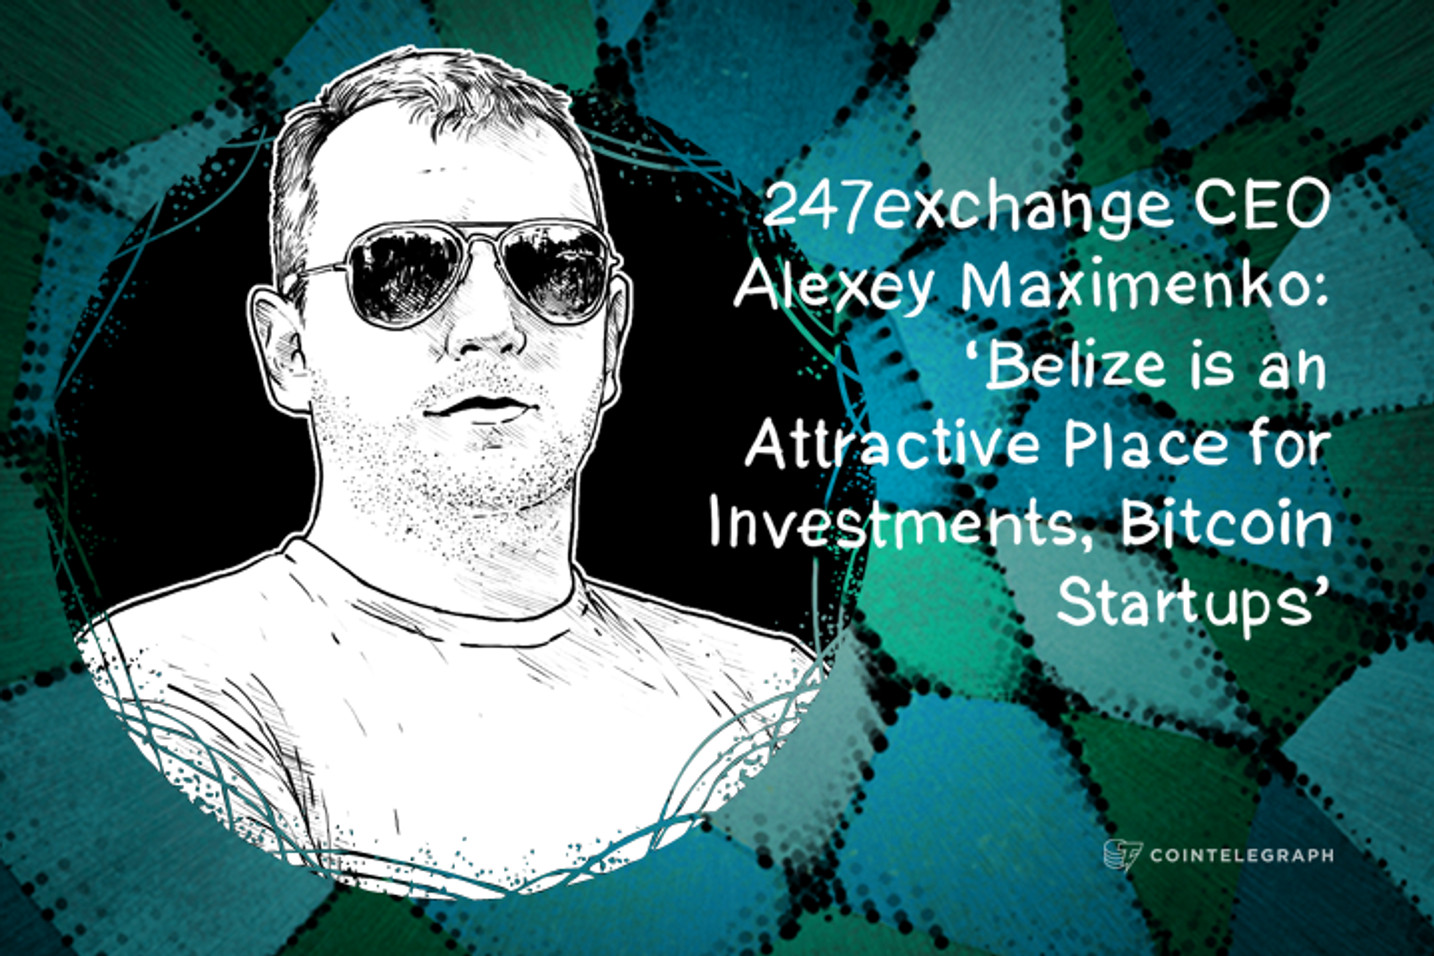 InterMoney Exchange (247exchange.com) CEO Alexey Maximenko: 'Belize is an Attractive Place for Investments, Bitcoin Startups'